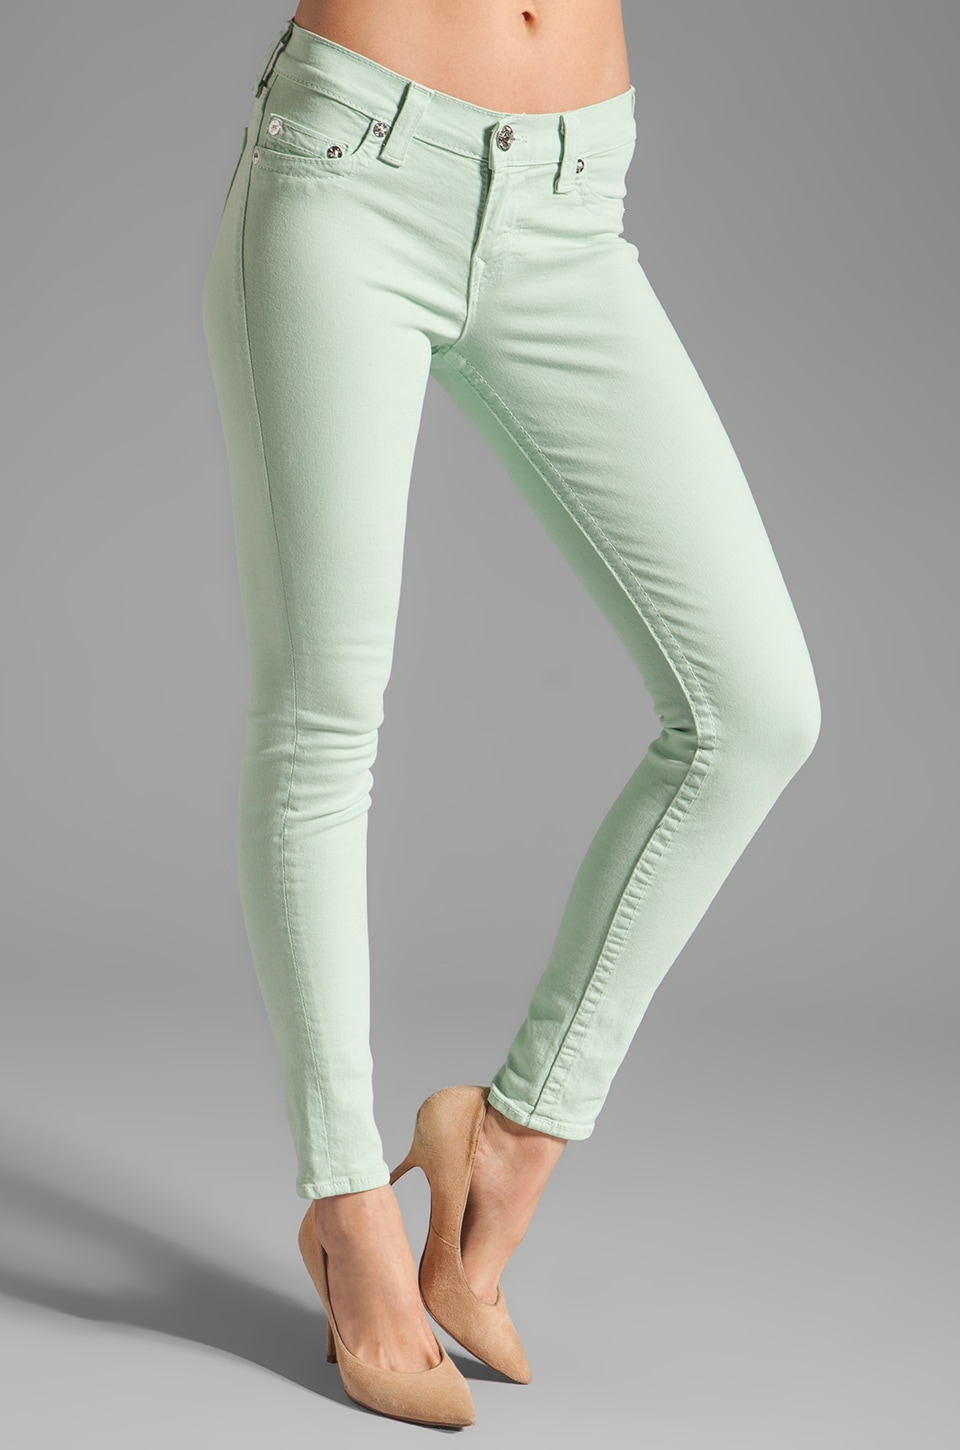 True Religion Halle Skinny Legging in Old Mint